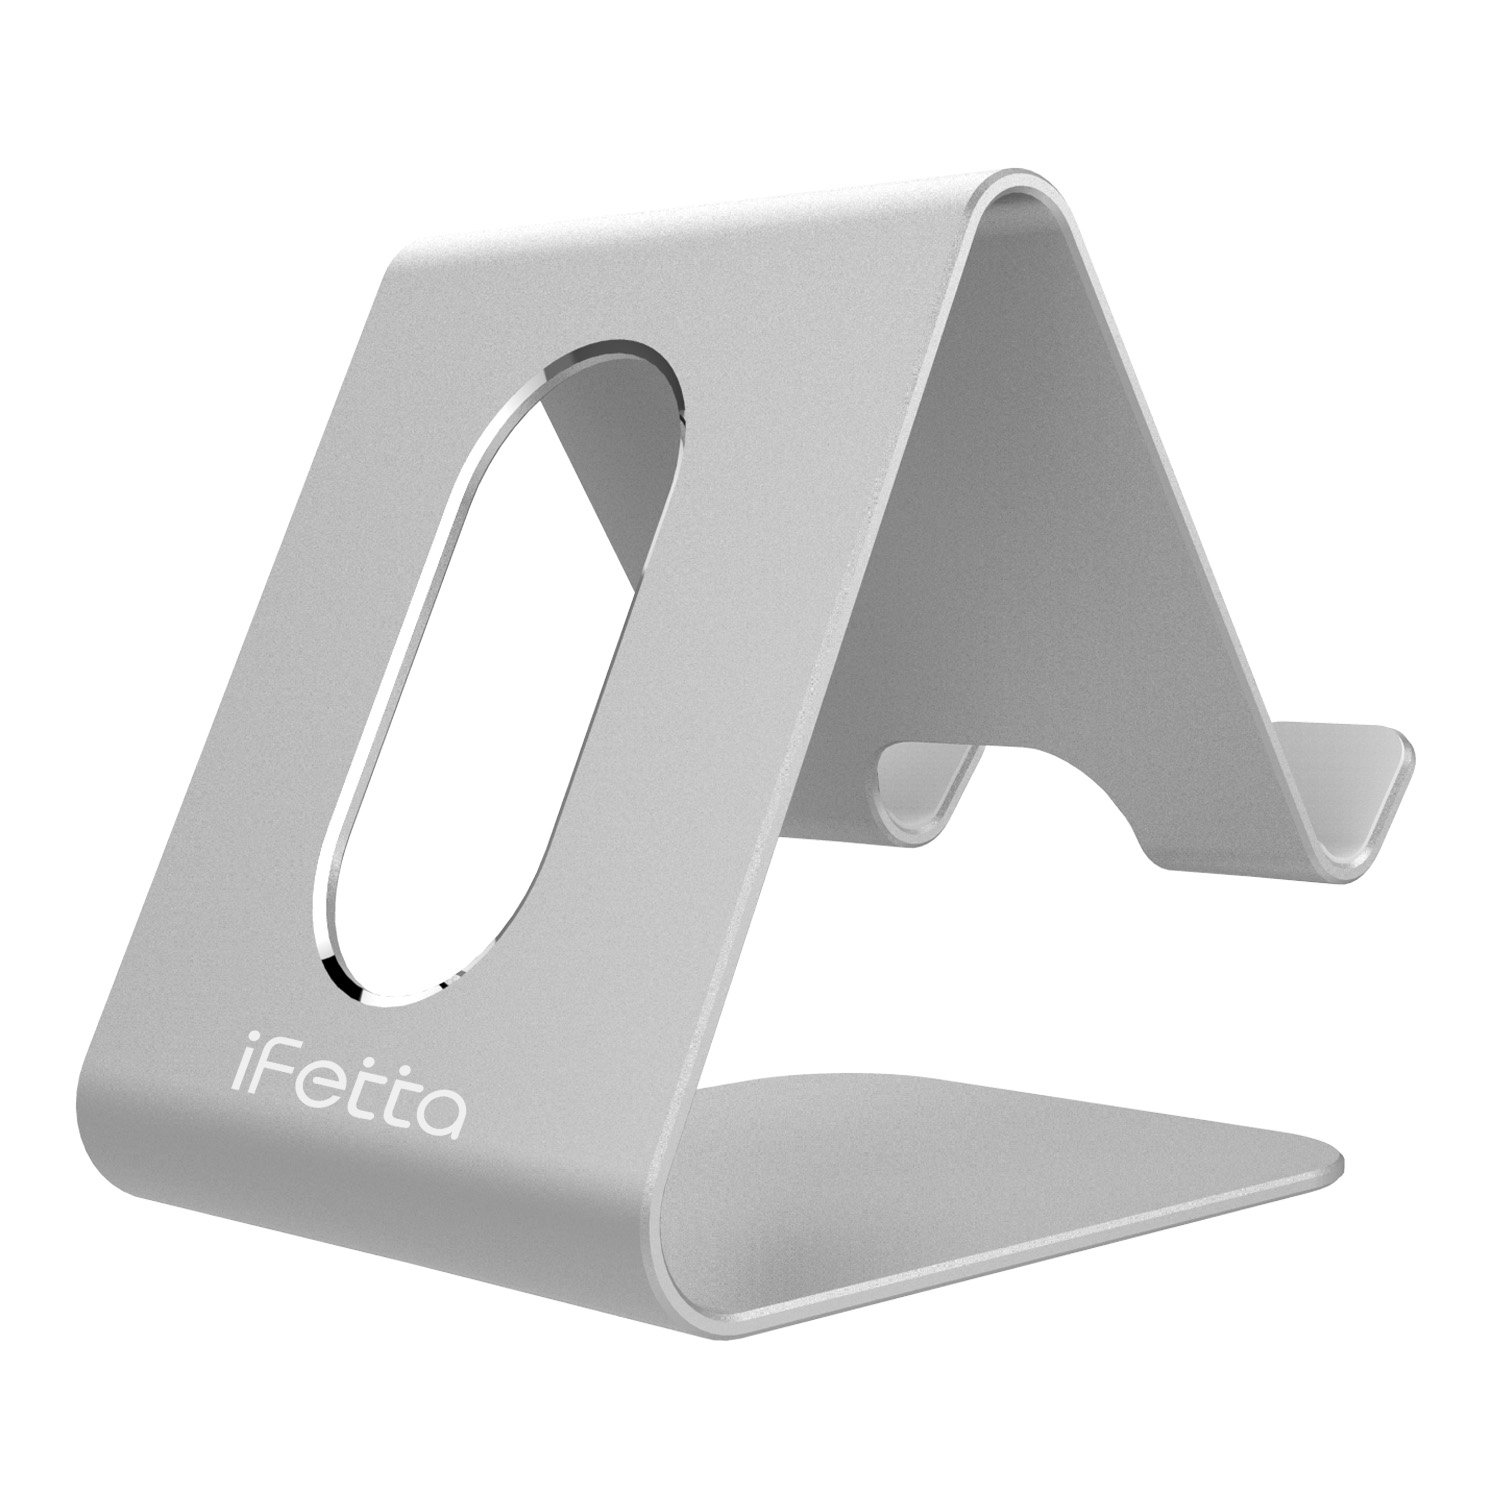 Cell Phone Stand, Ifecco Mobile Phone Holder for Tablet All Android Smartphones, iPhone 7 Plus iPad (Upgrade Silver)